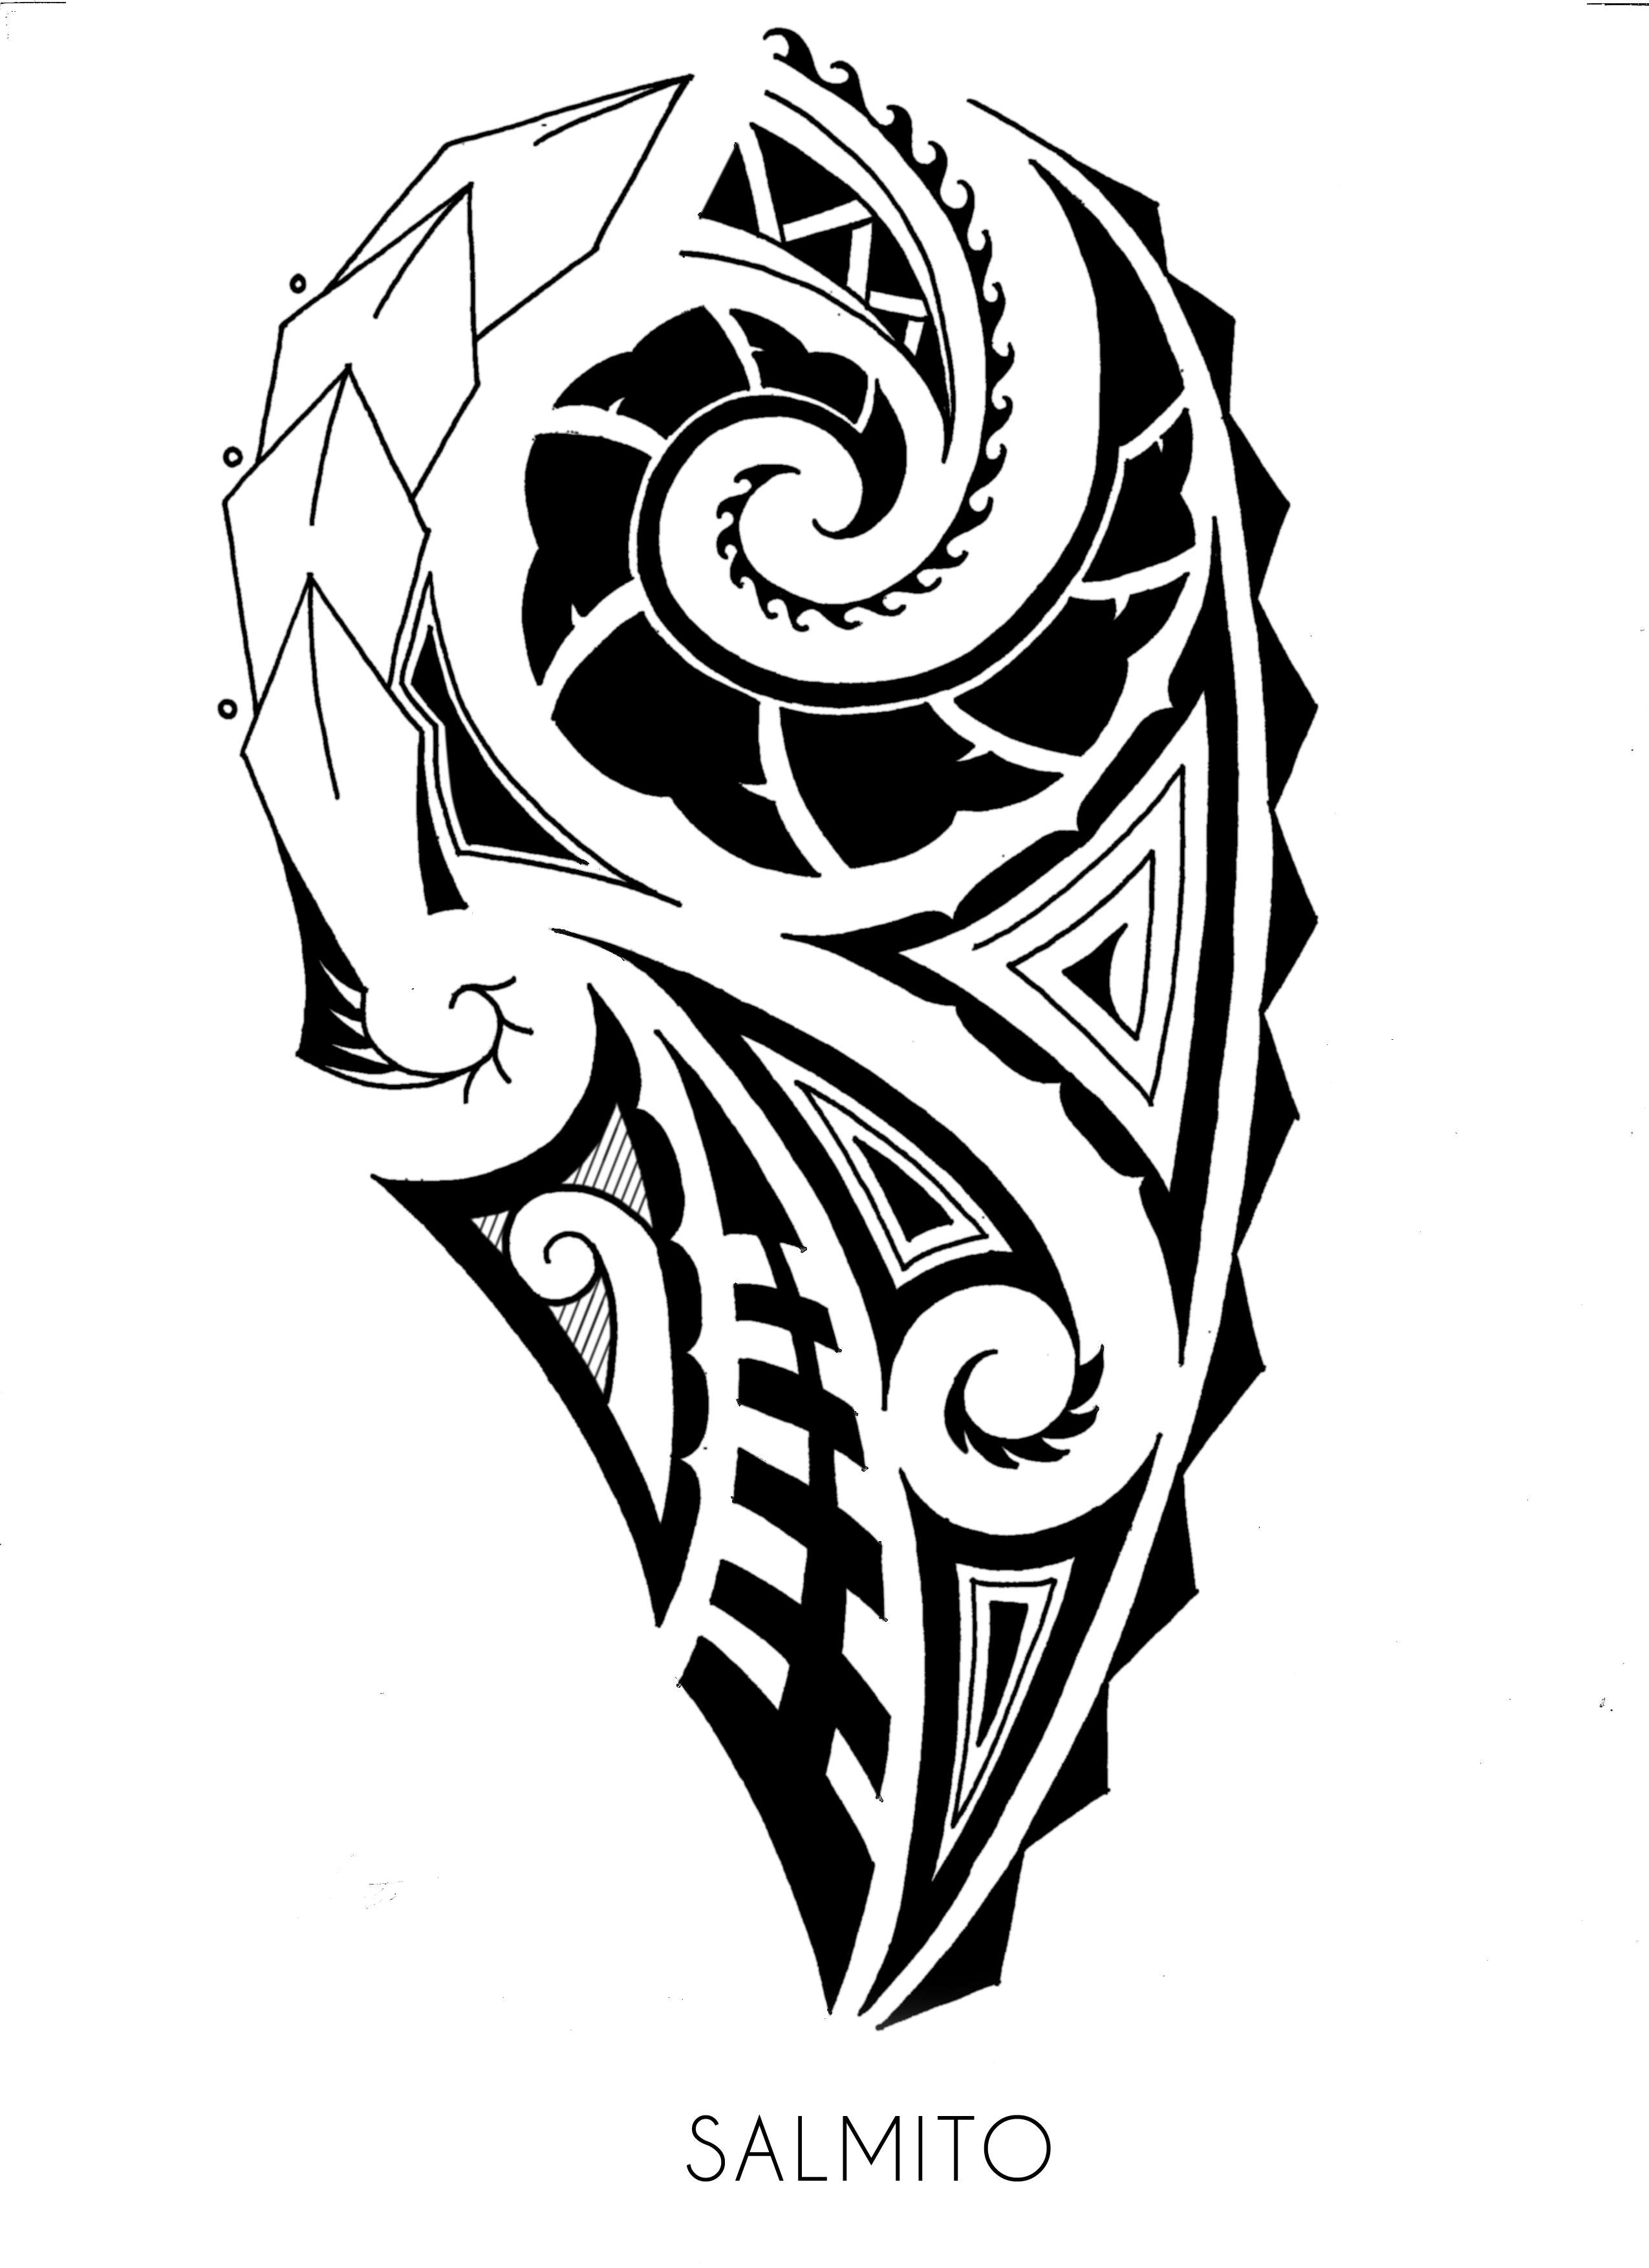 Maori_tatto___shoulder_by_salmito-d62zey7.png (2550×3507